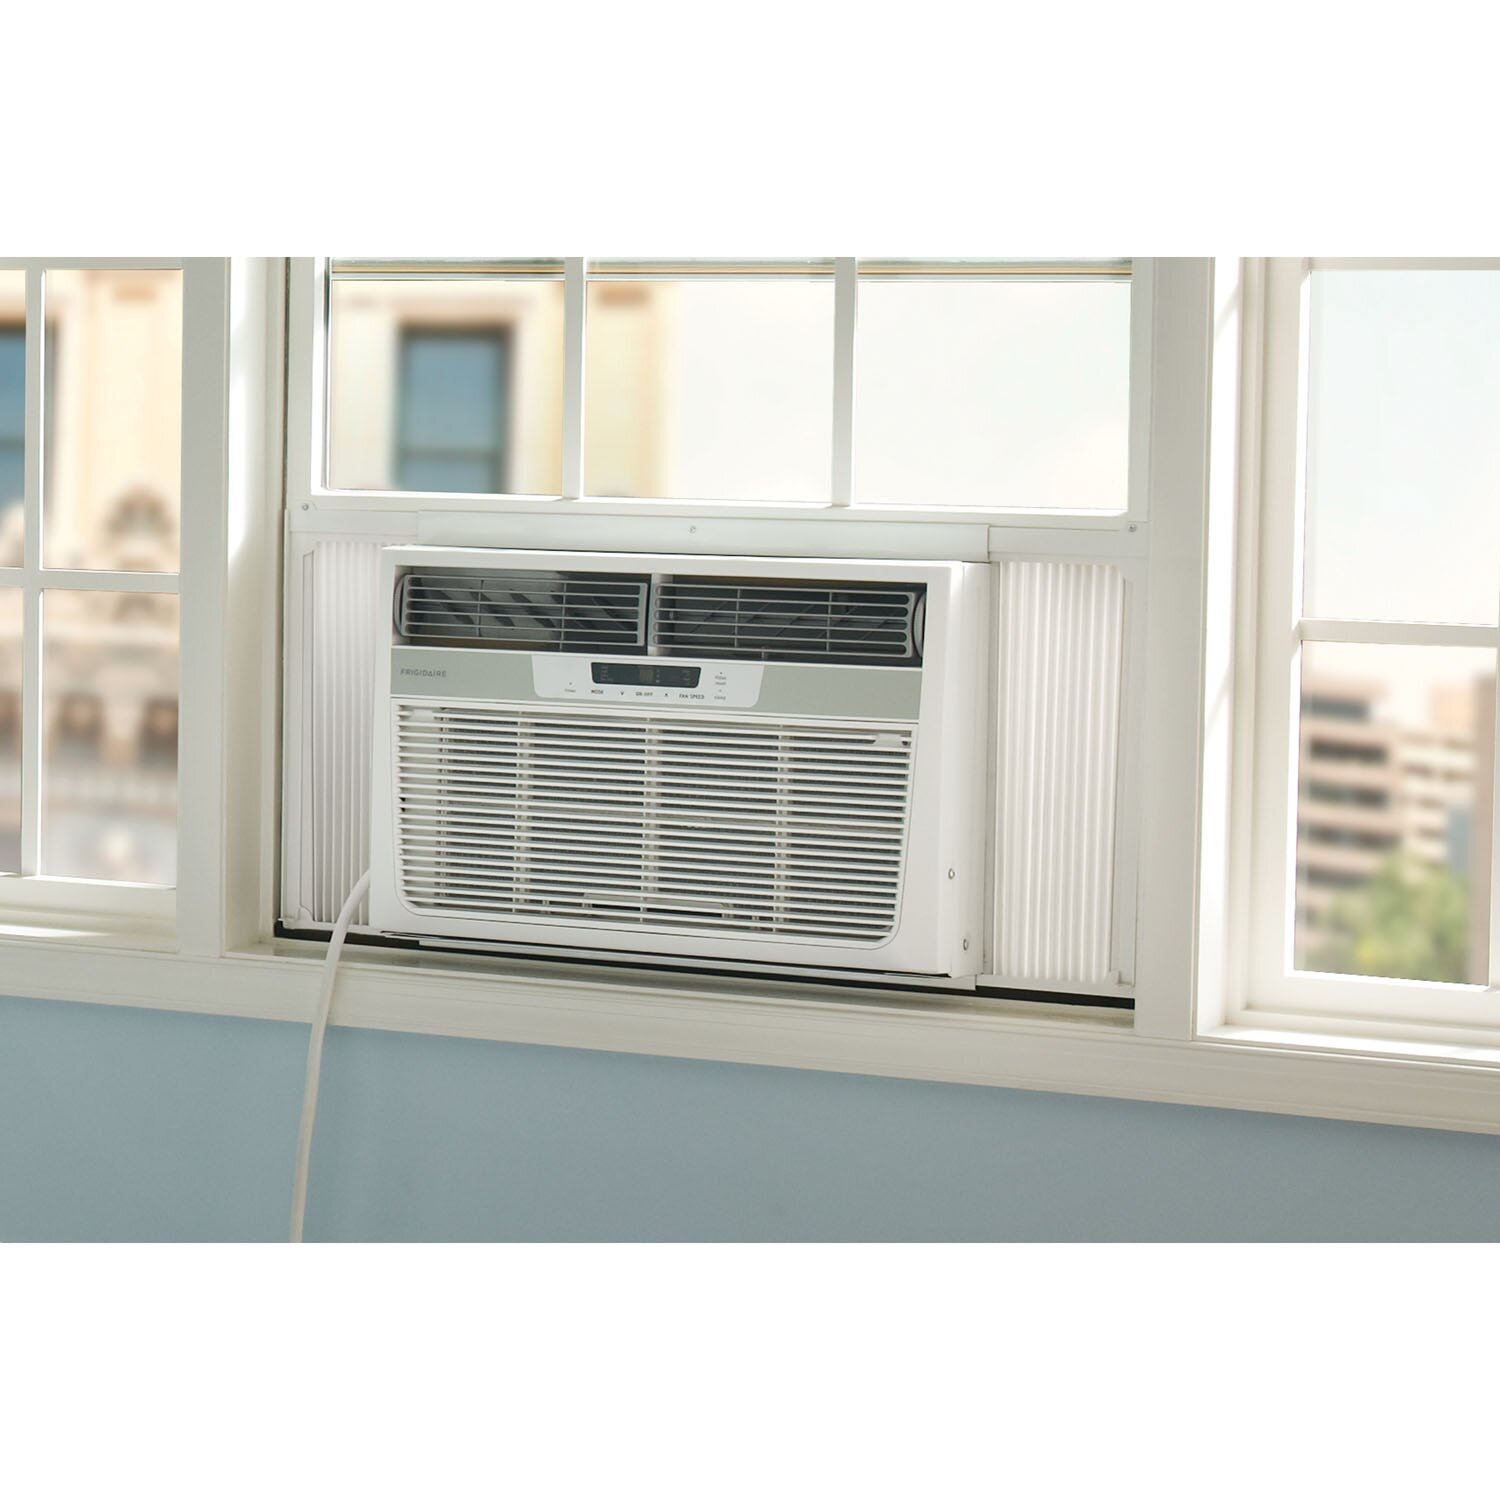 Compact Slide Out Chasis Air Conditioner/Heat Pump with Remote Control #557076